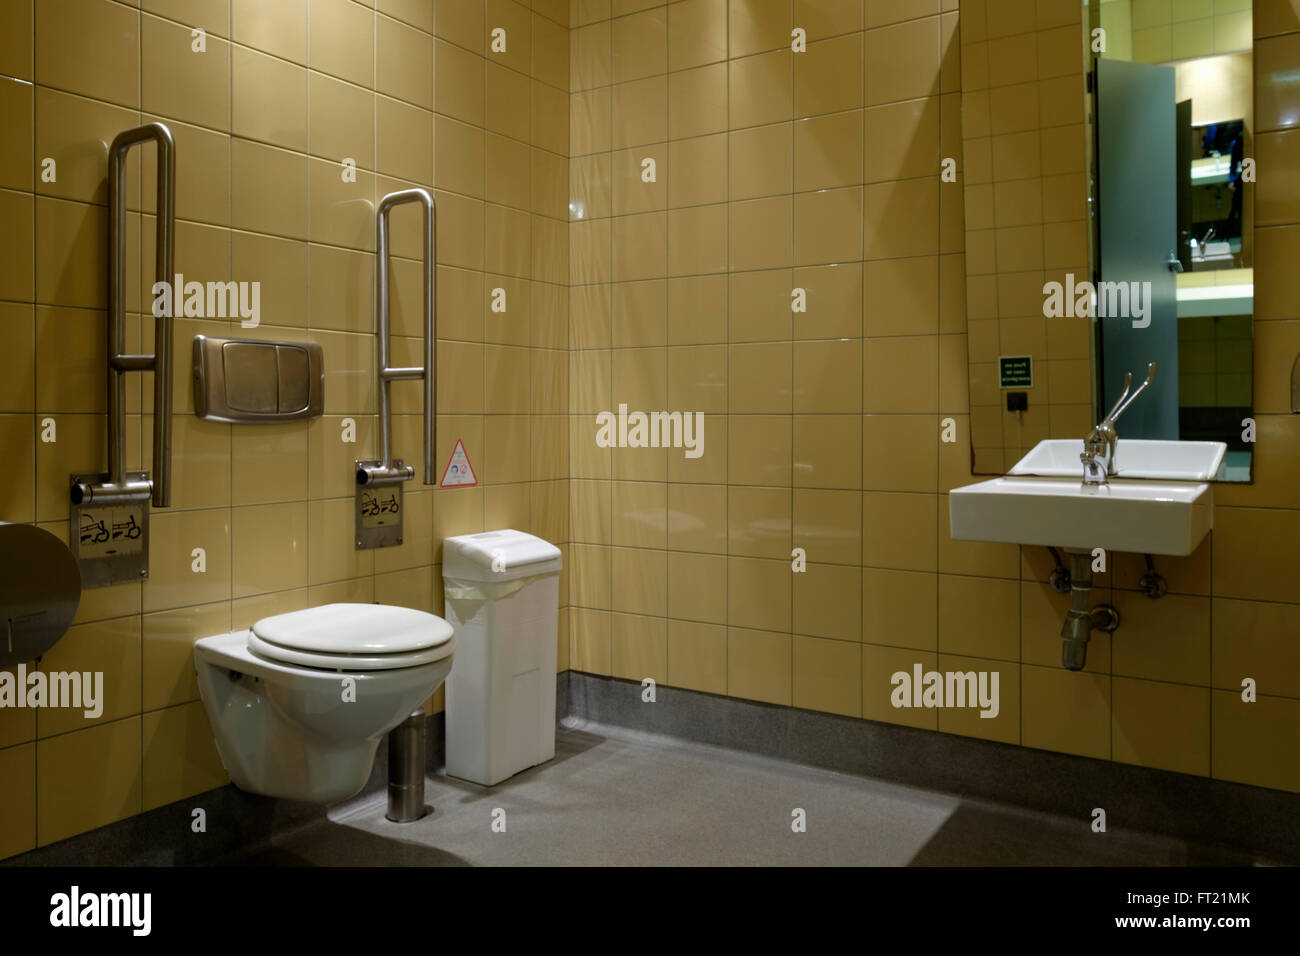 Disabled Toilet Stock Photos & Disabled Toilet Stock Images - Alamy